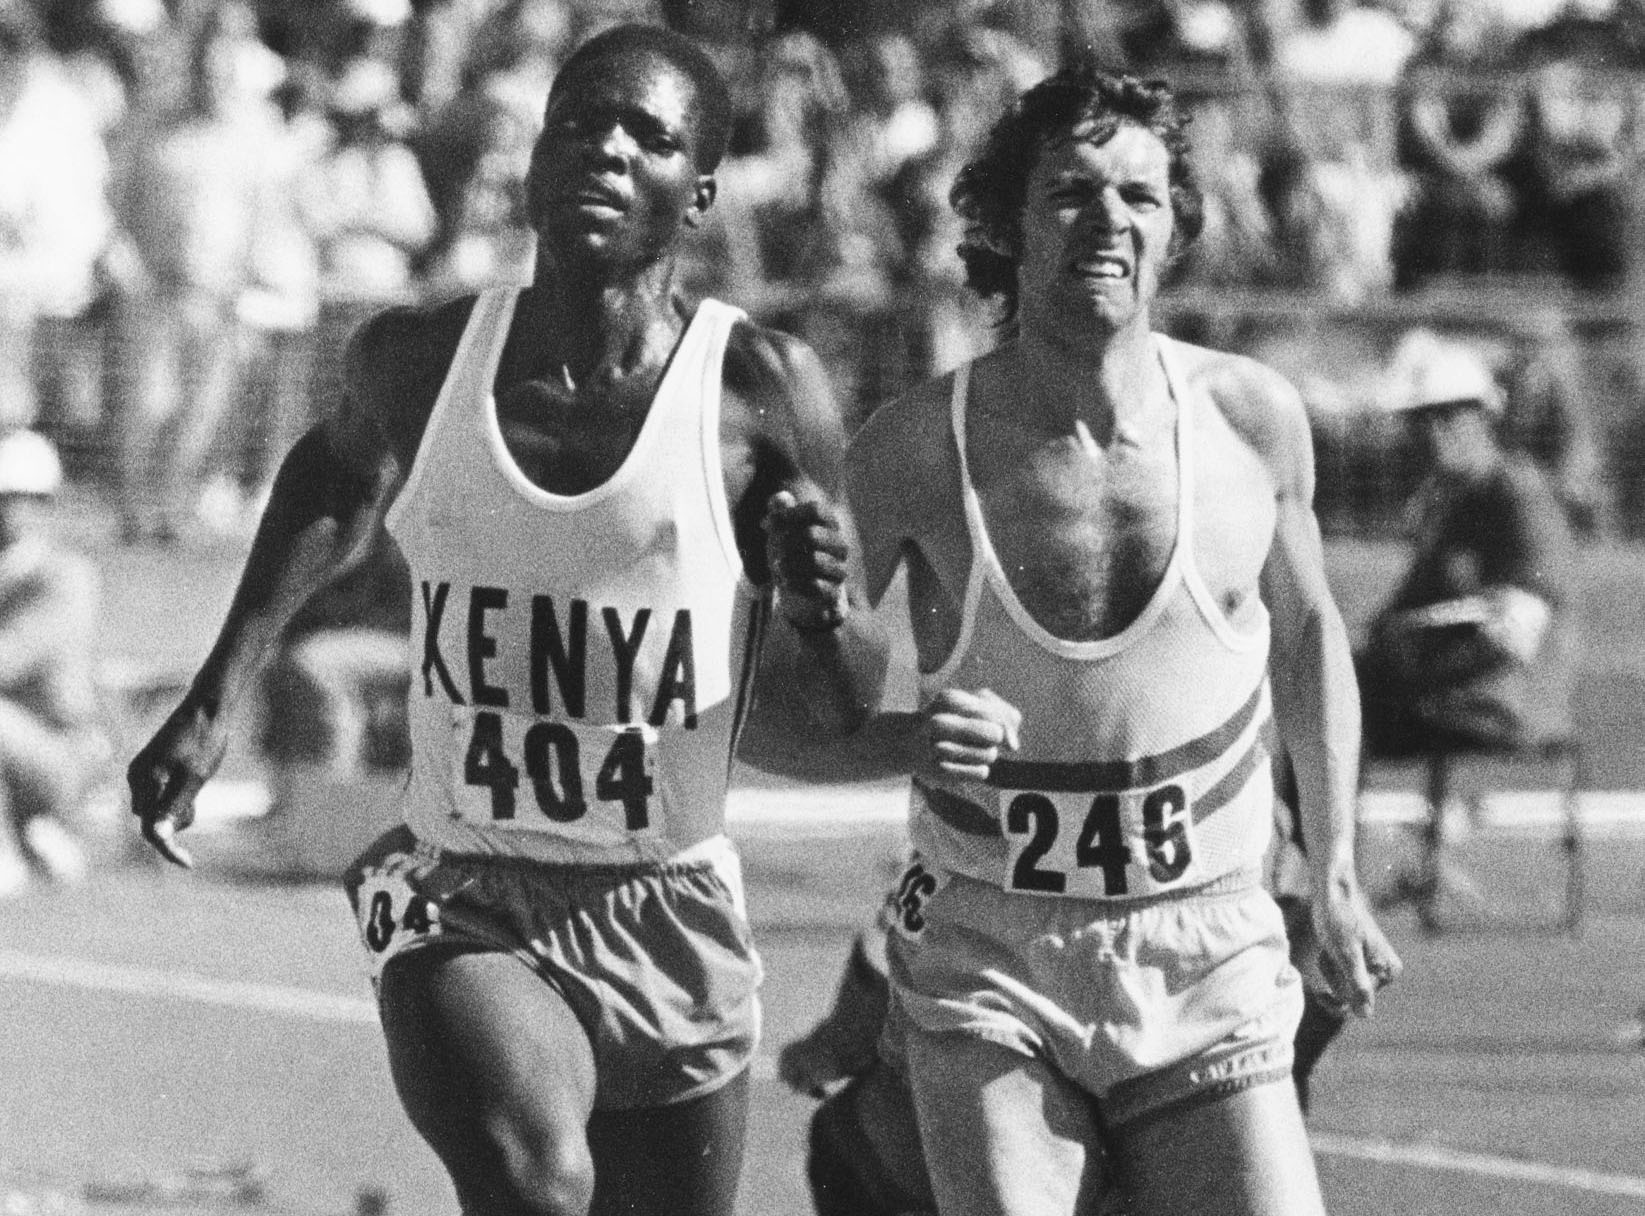 Jipcho battles it out with England's Brendan Foster in the 5000m at the 1974 Christchurch...